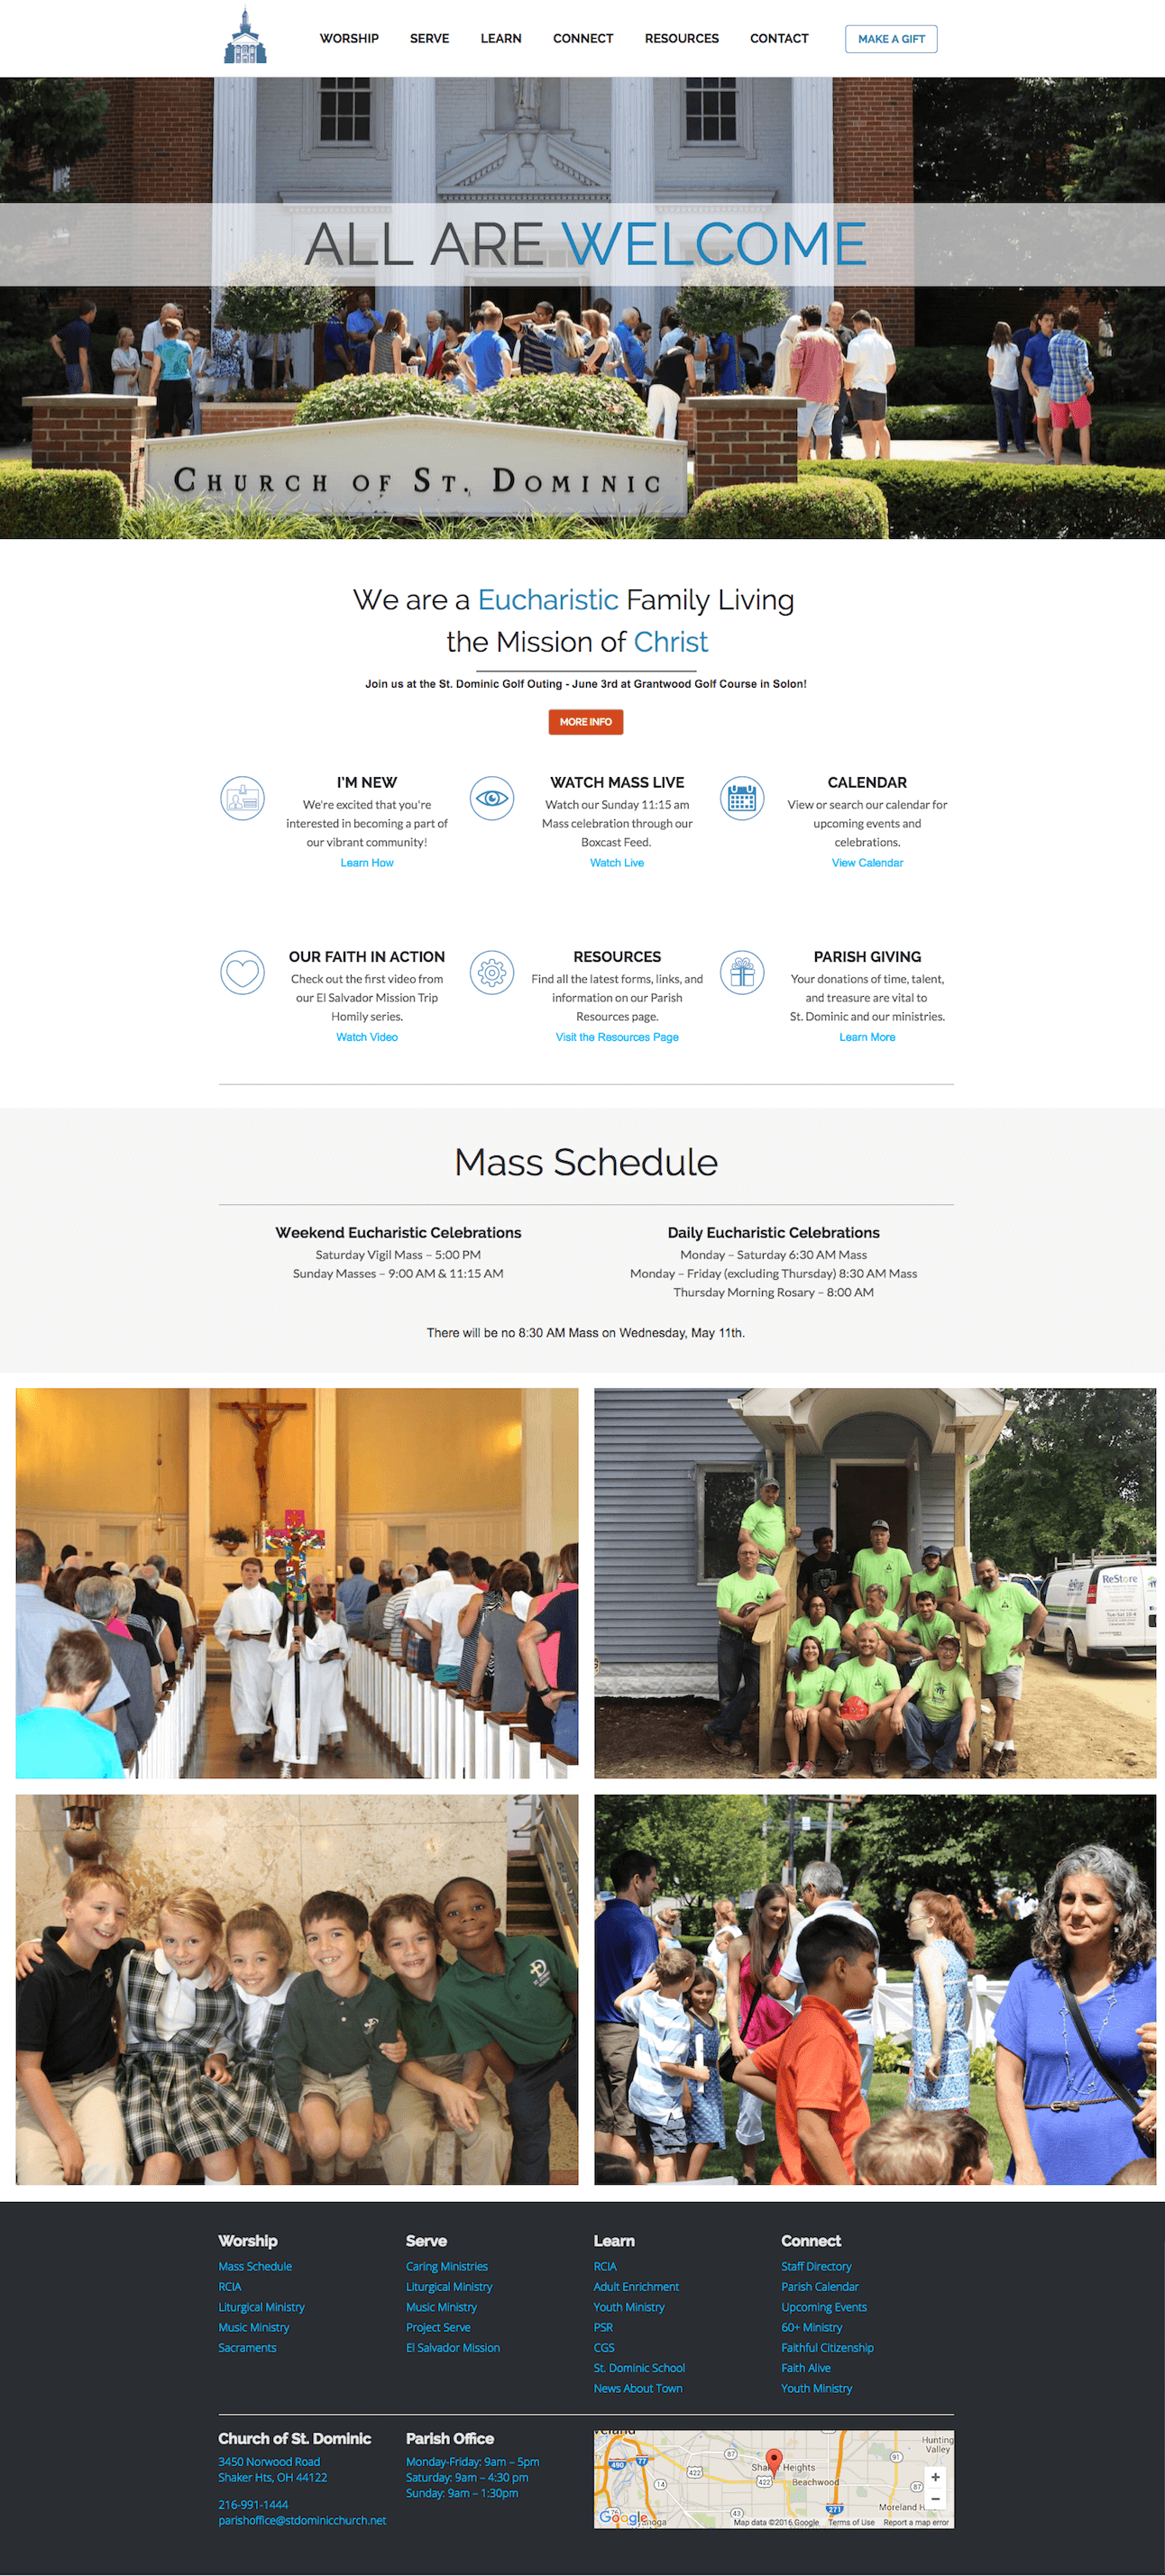 Image of responsive web design case study by Quetra Creative for St. Dominic Full Page